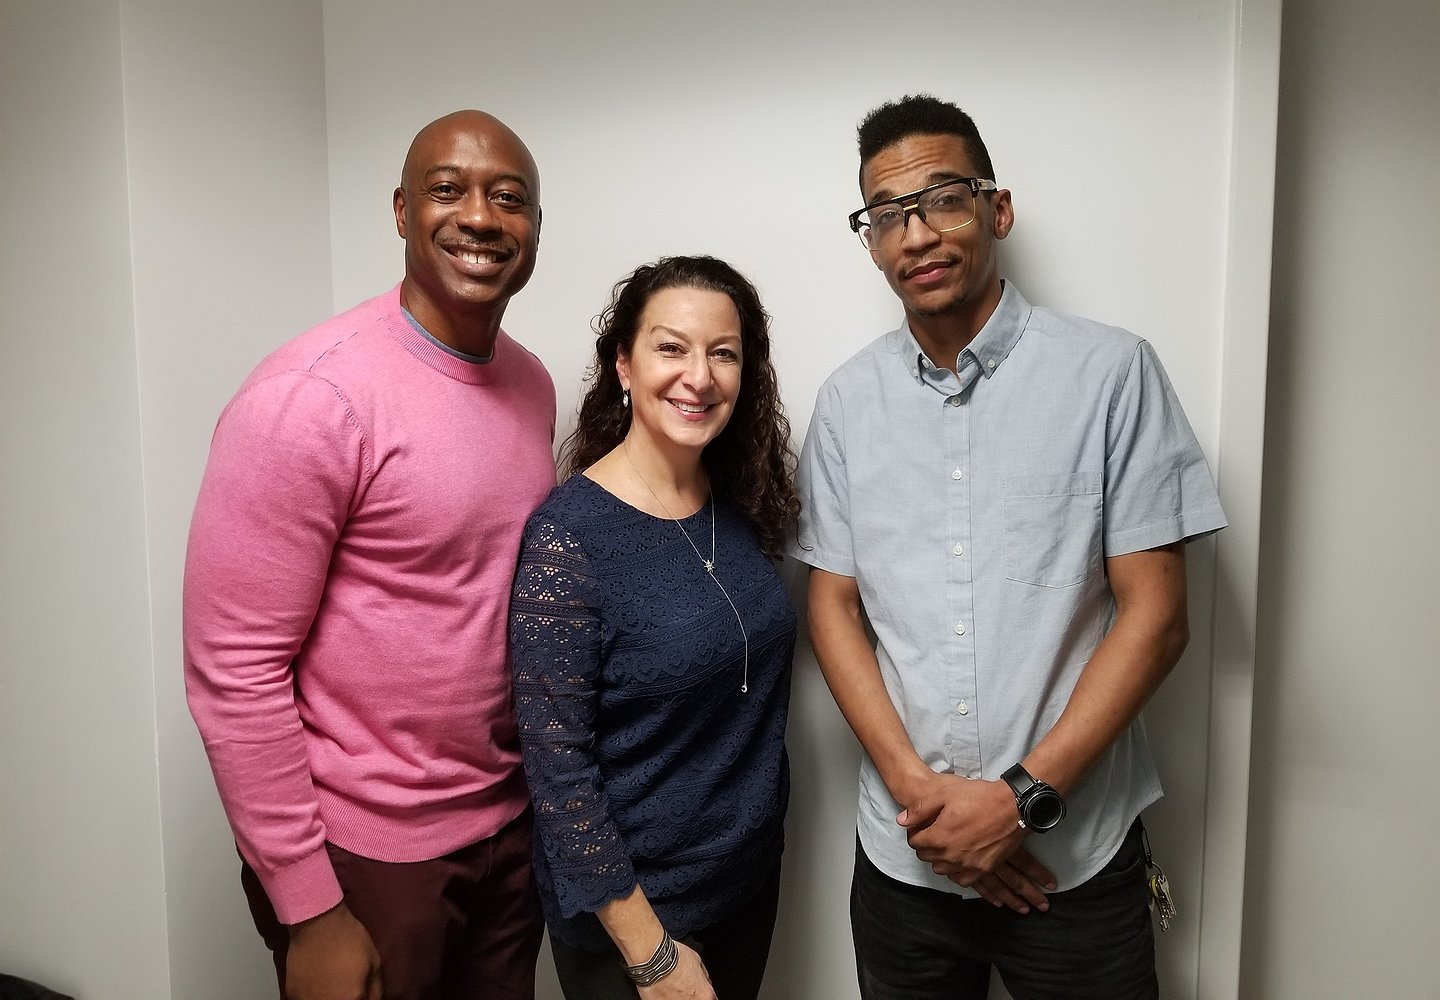 Podcast: McKenzie and Andrade on Black Culture in Media